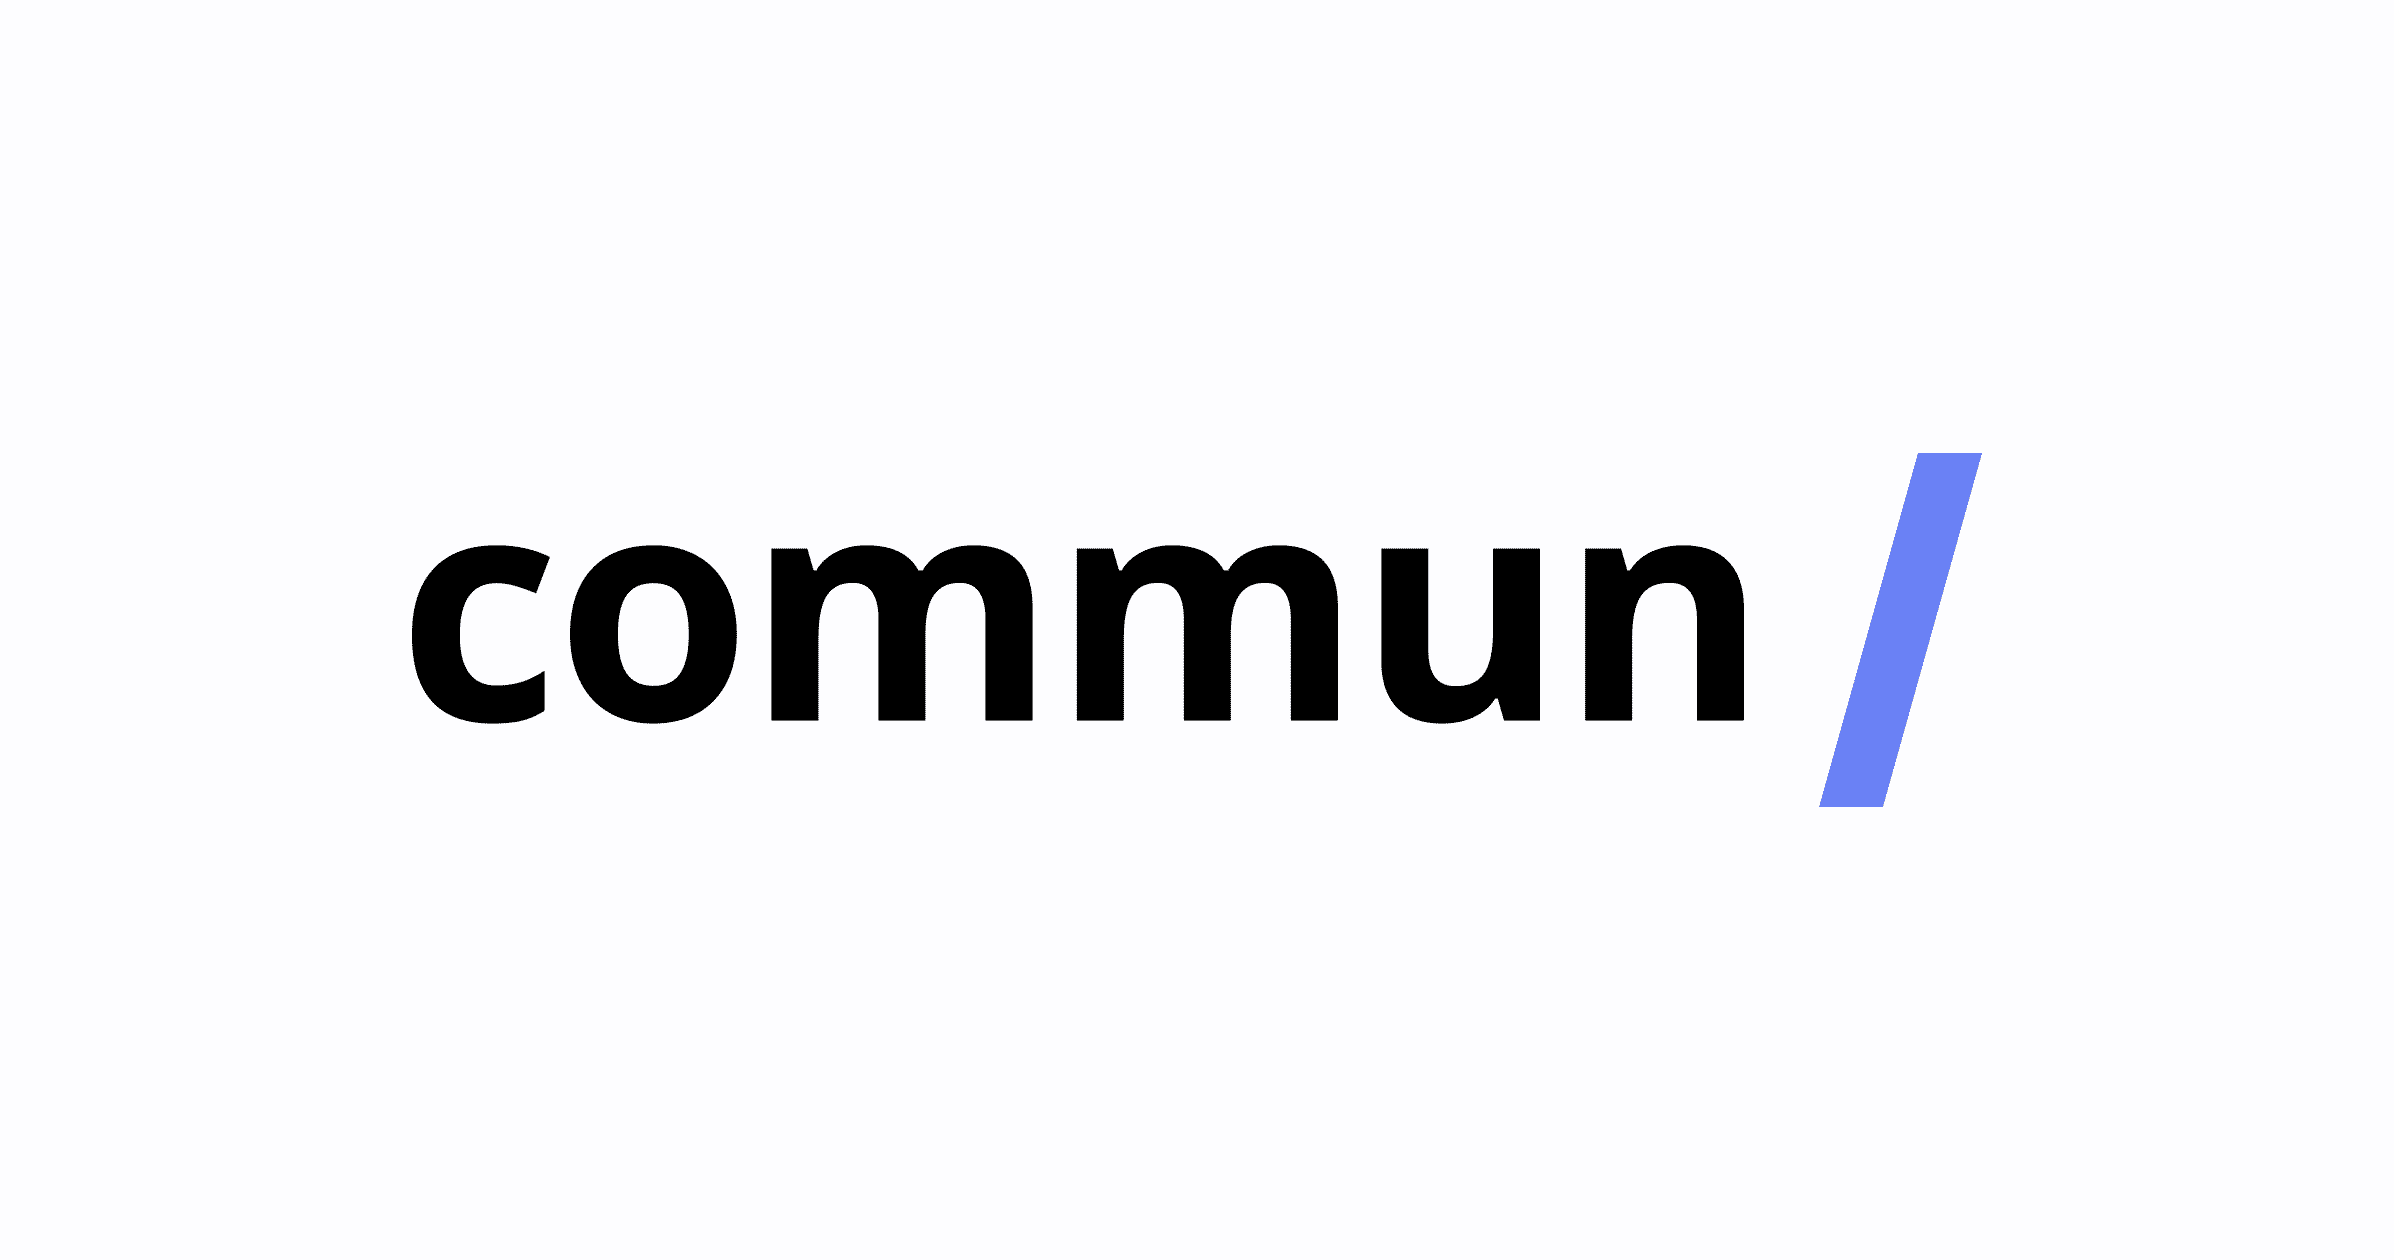 The Commun is closing. Details of the project